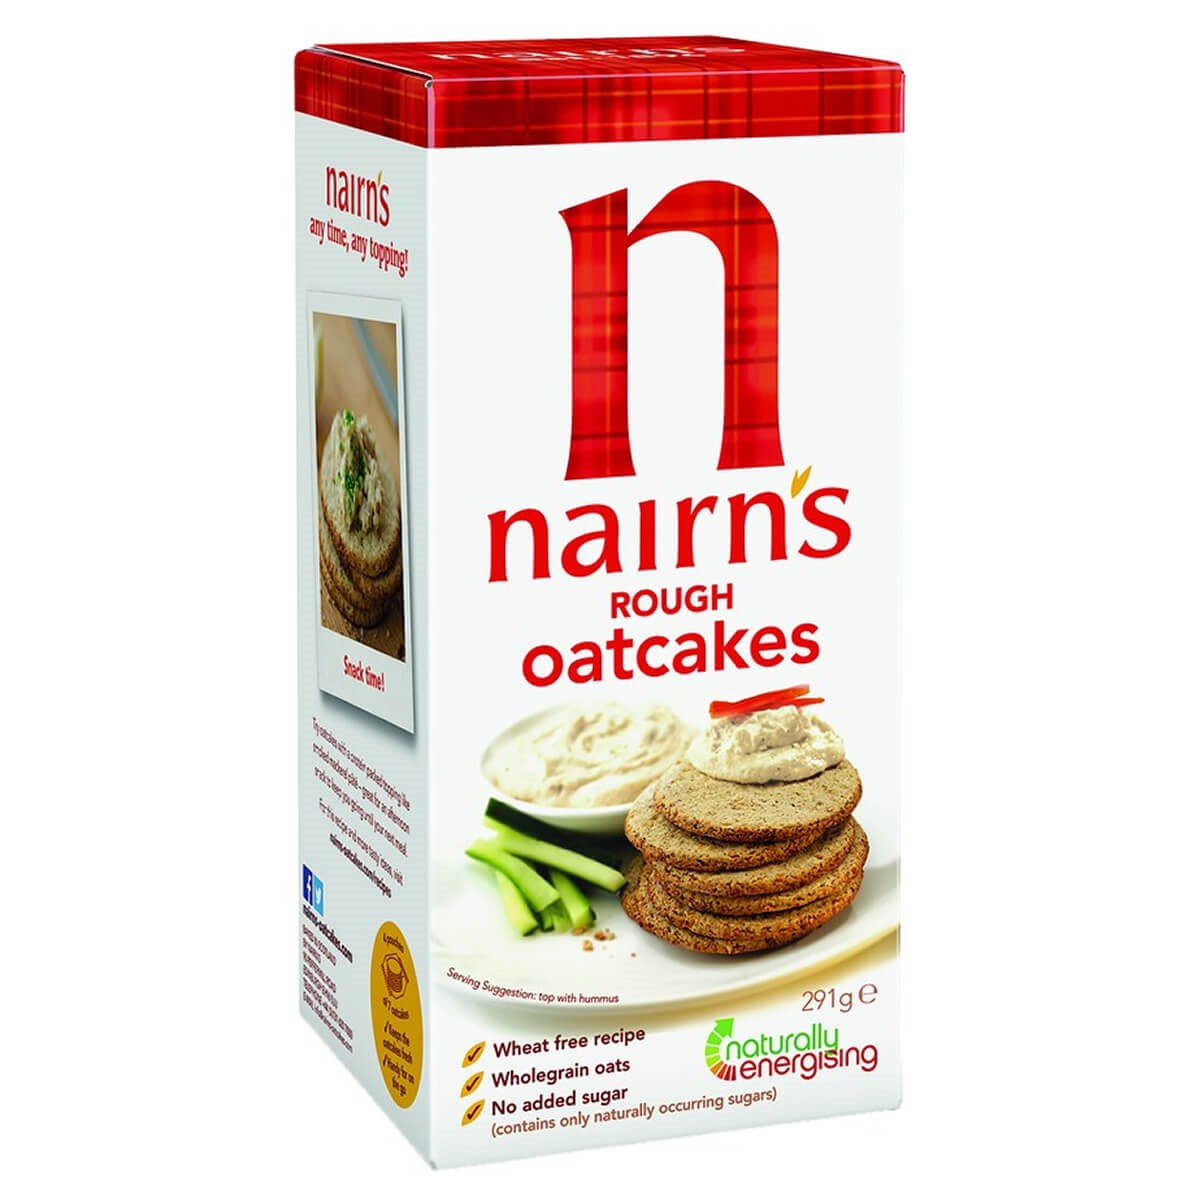 Nairn's Rough Oatcakes